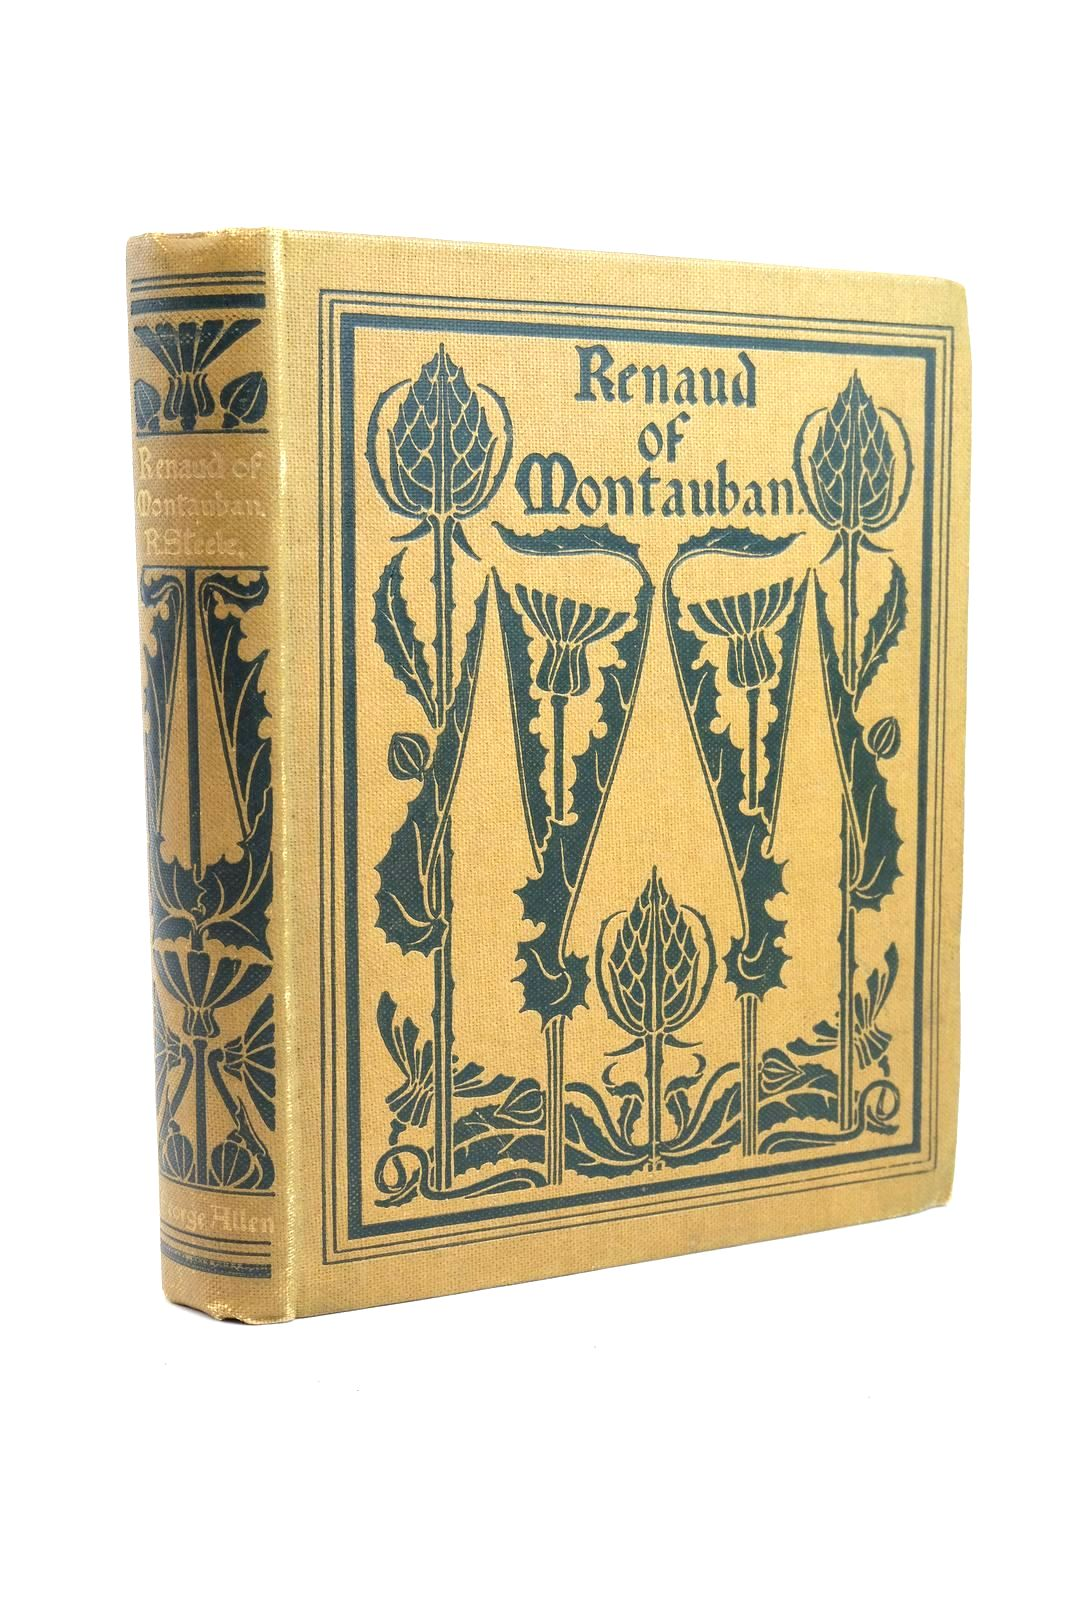 Photo of RENAUD OF MONTAUBAN written by Steele, Robert illustrated by Mason, Frederick published by George Allen (STOCK CODE: 1321146)  for sale by Stella & Rose's Books